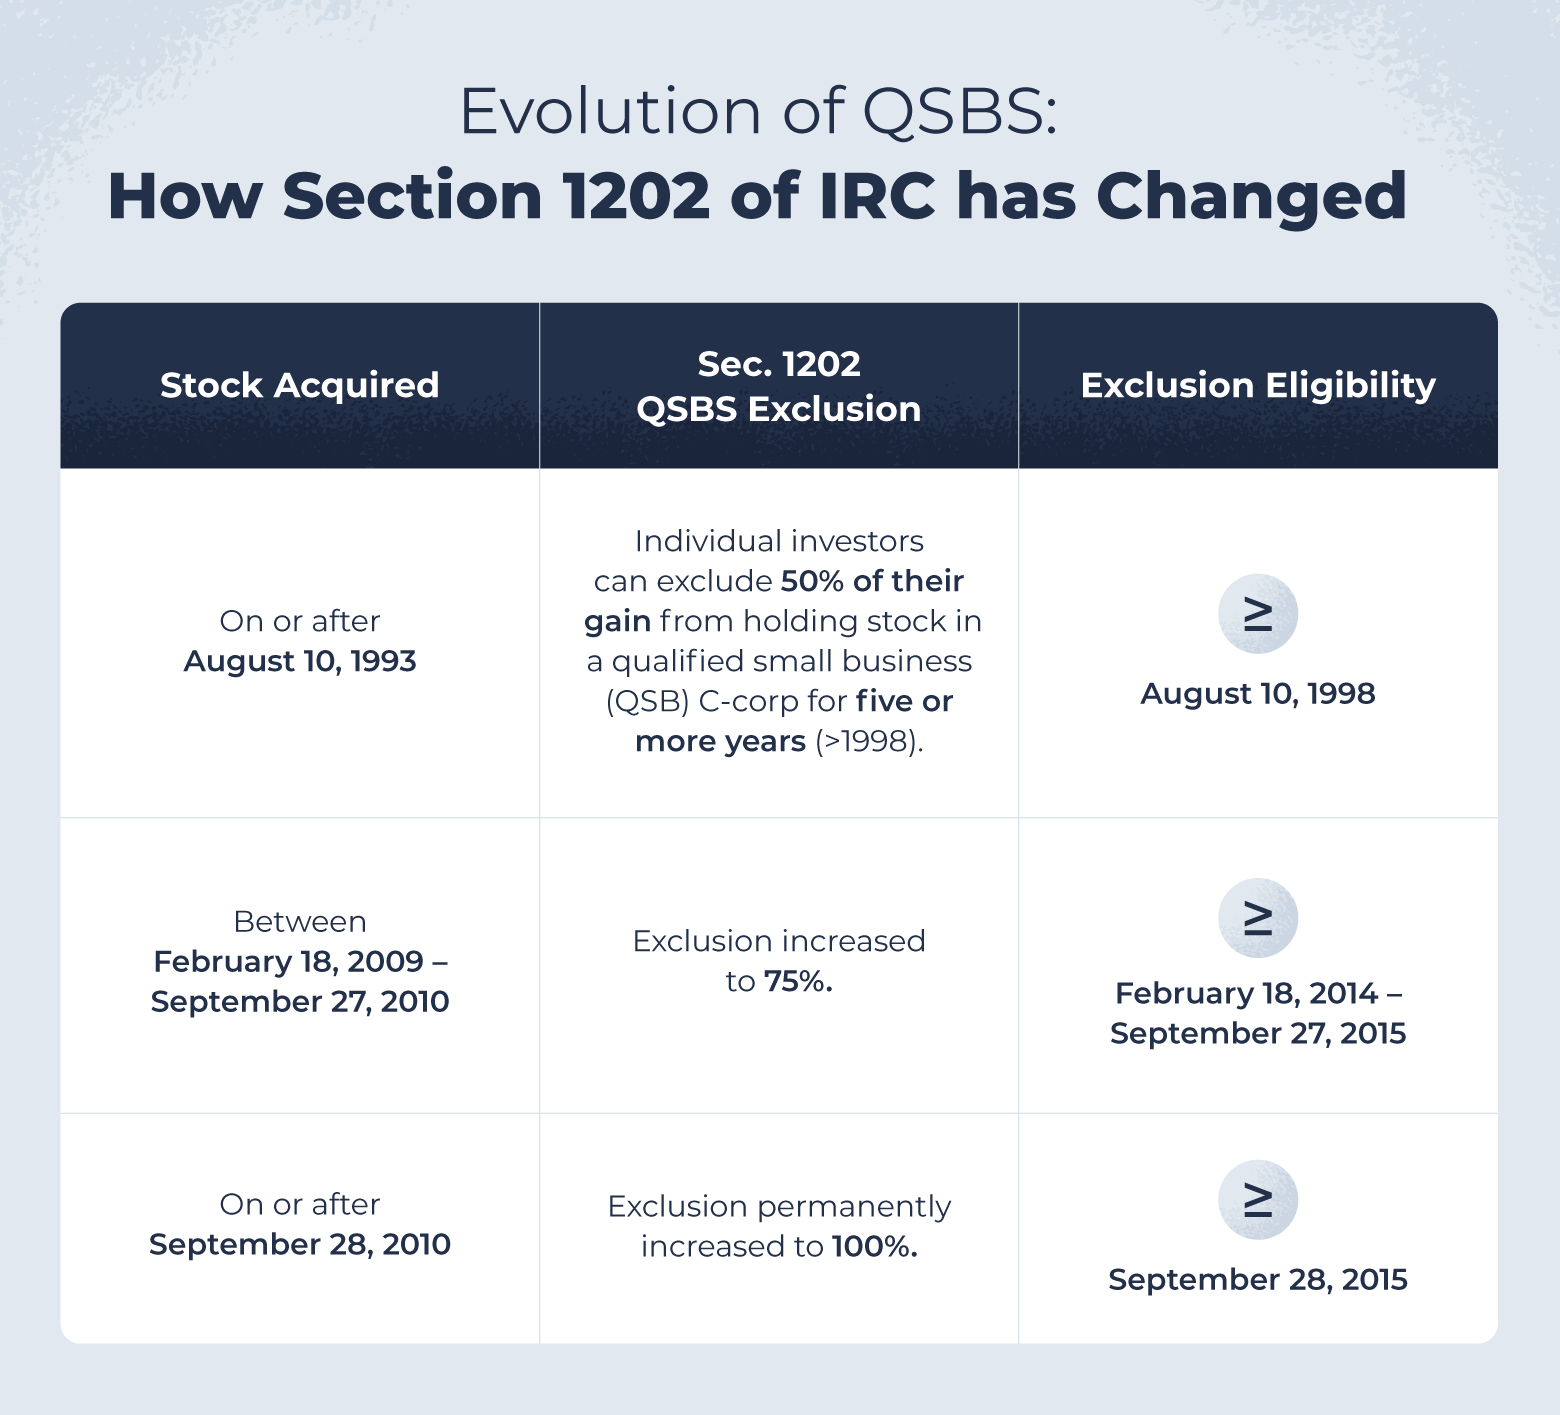 How the Internal Revenue Code has changed Section 1202 between August 10, 1993 and September 28, 2010